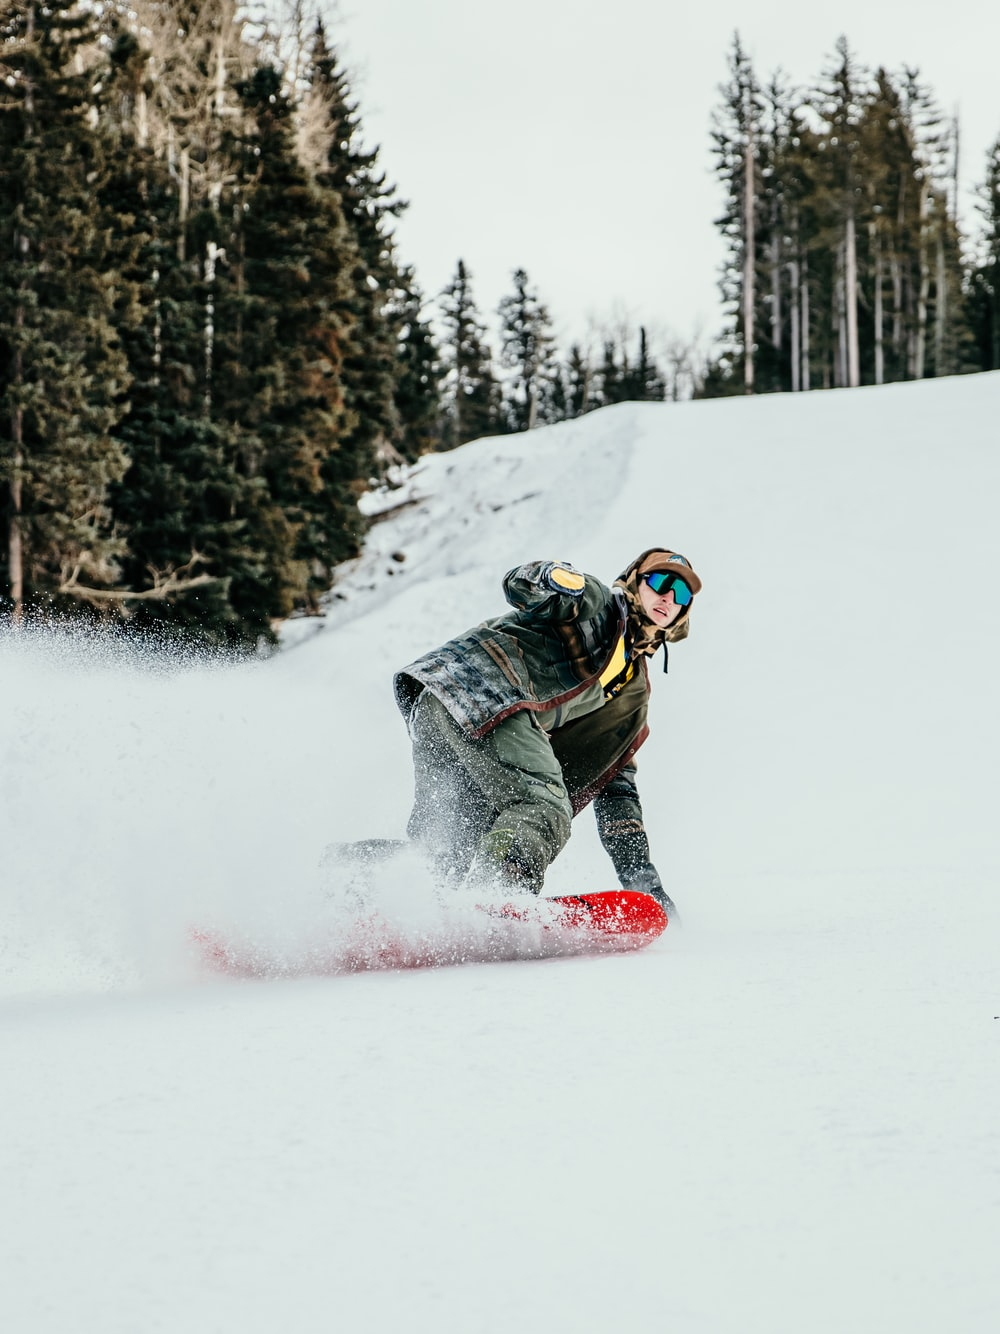 person in black and white jacket riding red snowboard on snow covered ground during daytime